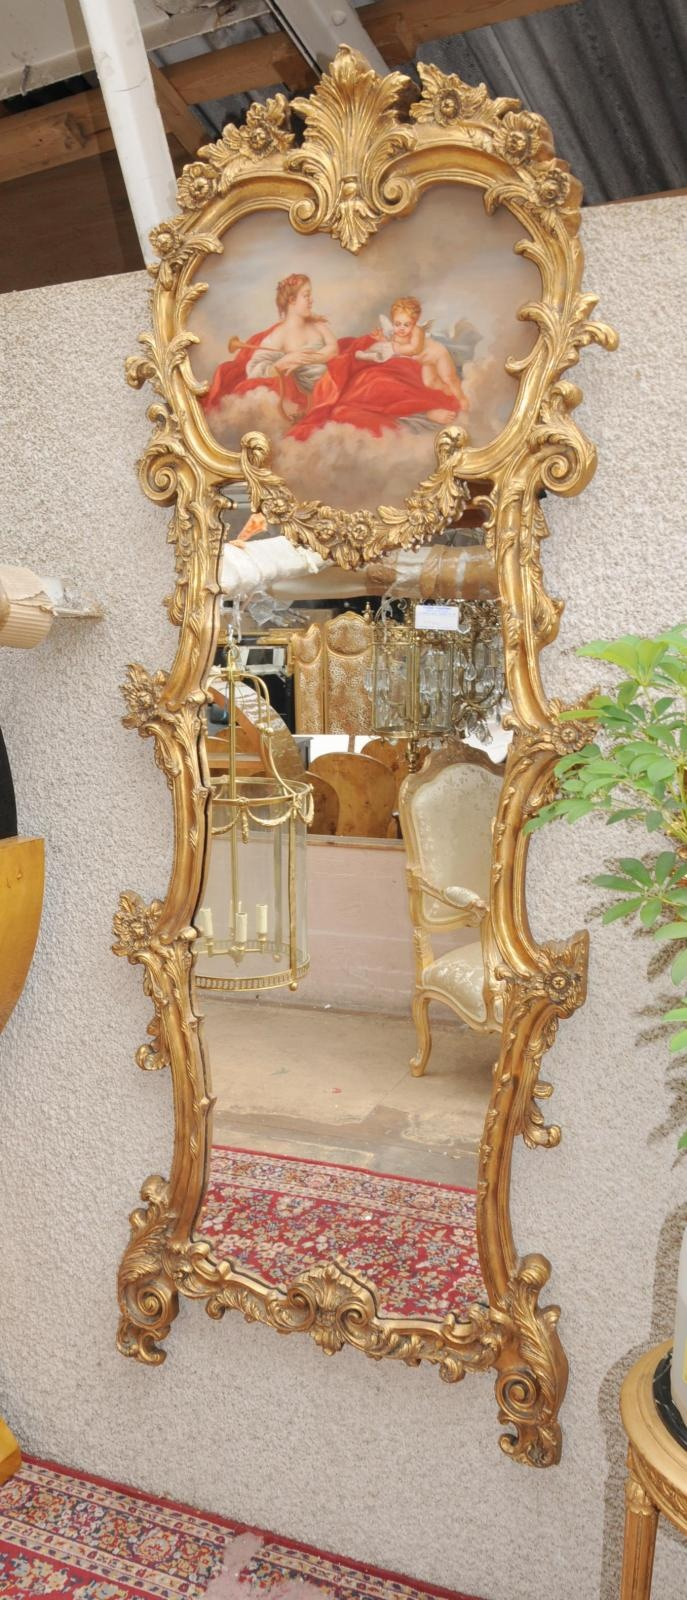 84 best mirror images on pinterest rococo mirrors and mirror mirror antique mirrors antique frames beautiful mirrors painted dressers mirror mirror rococo baroque wall decorations luxury amipublicfo Gallery